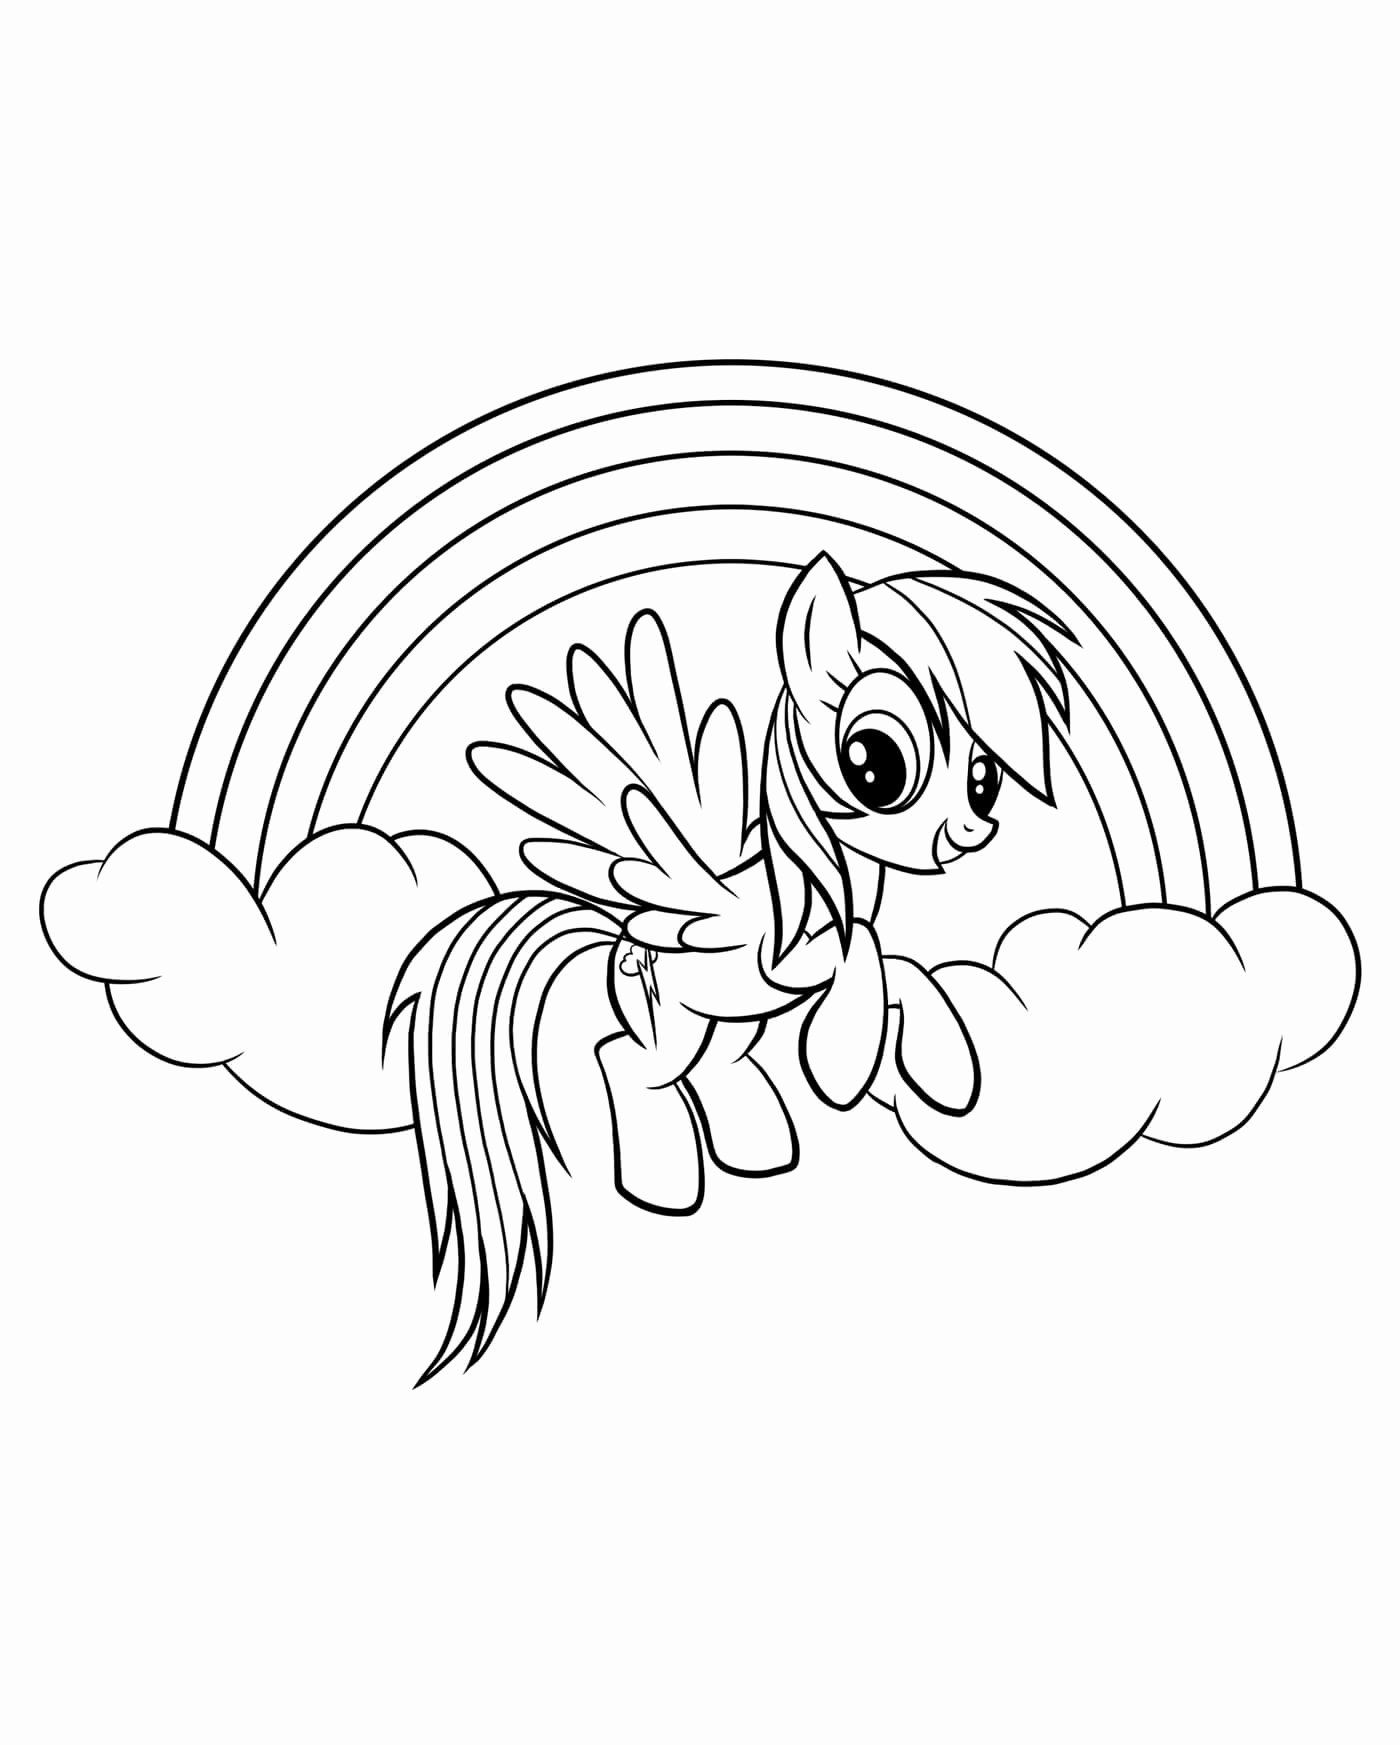 21 Rainbow Dash Coloring Page in 2020 | My little pony ...